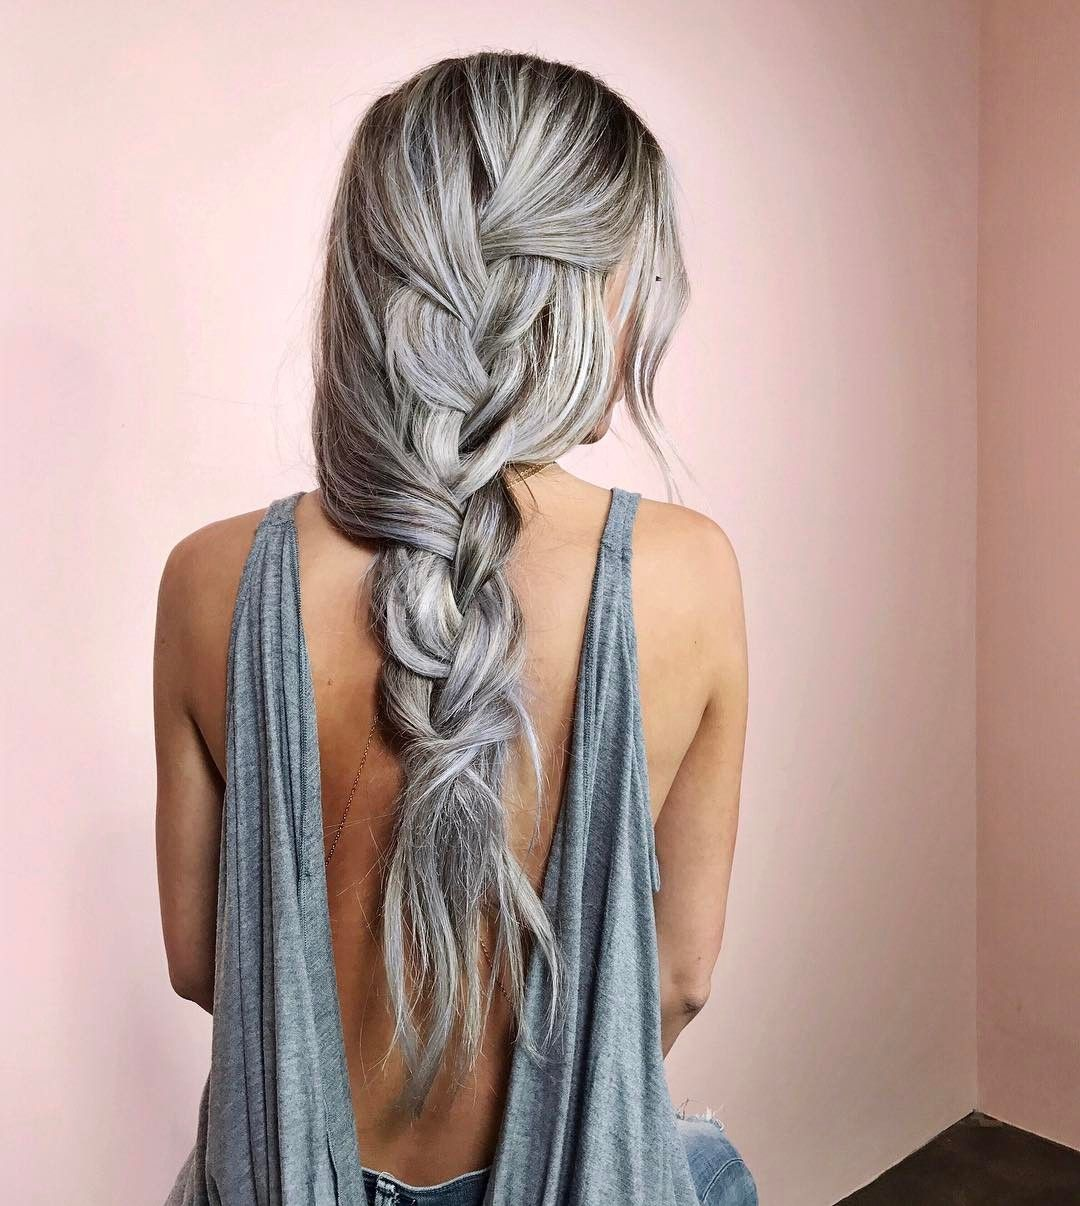 Following The Debut Of Wonder Woman We Ve Listed Some Of Our Favorite Amazonian Inspired Hairstyles That Are Perf Hair Styles Elegant Wedding Hair Edgy Hair